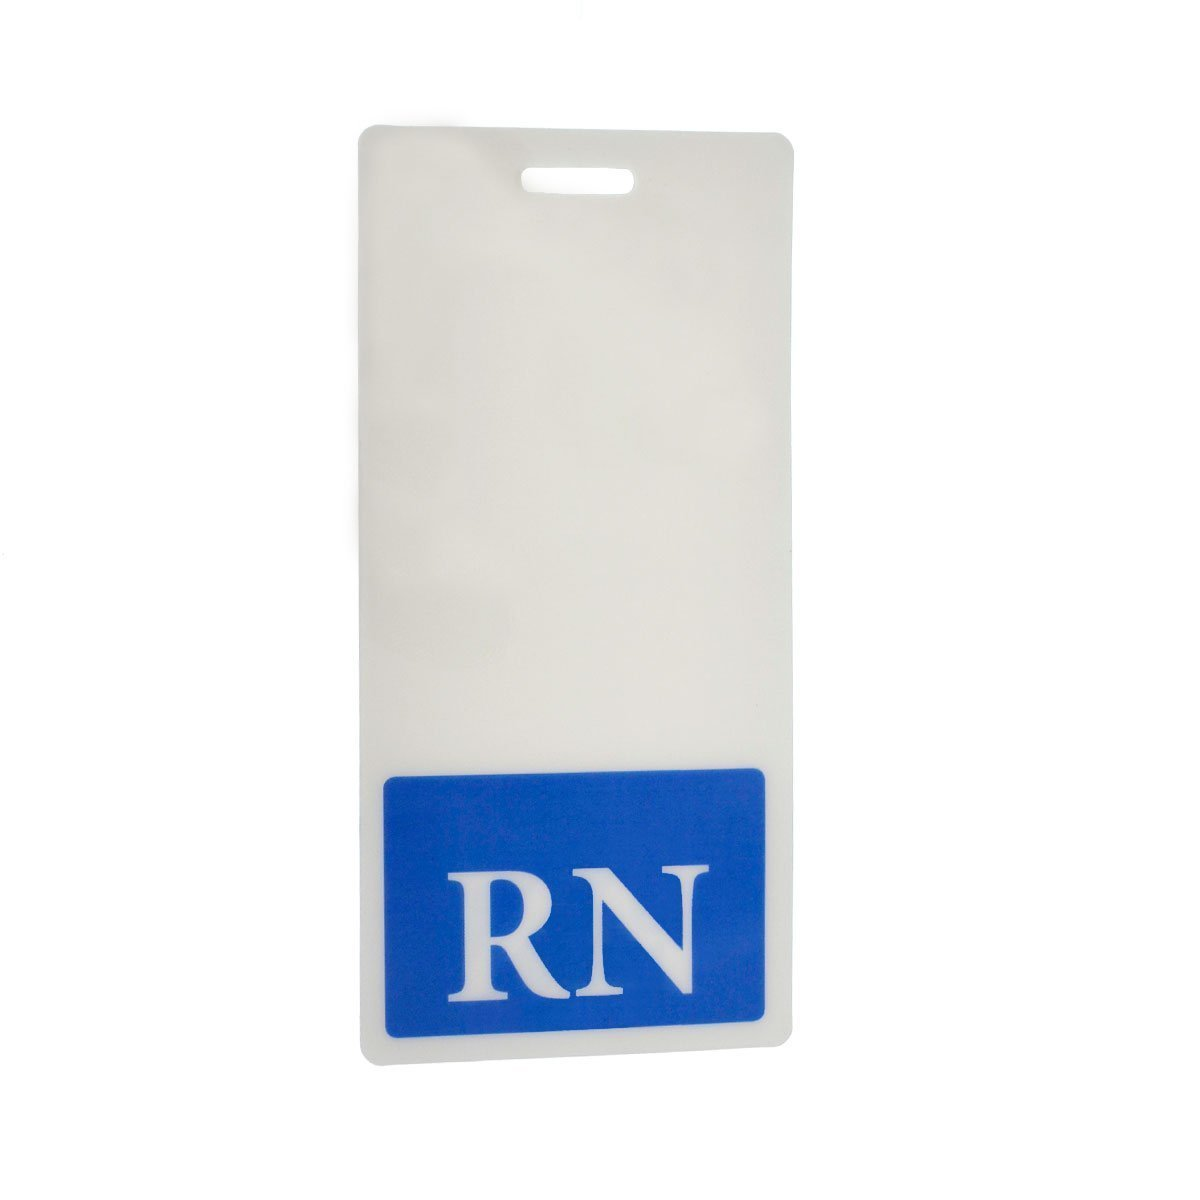 50 Pack - RN Registered Nurse Vertical Hospital ID Badge Buddies with Blue Background by Specialist ID